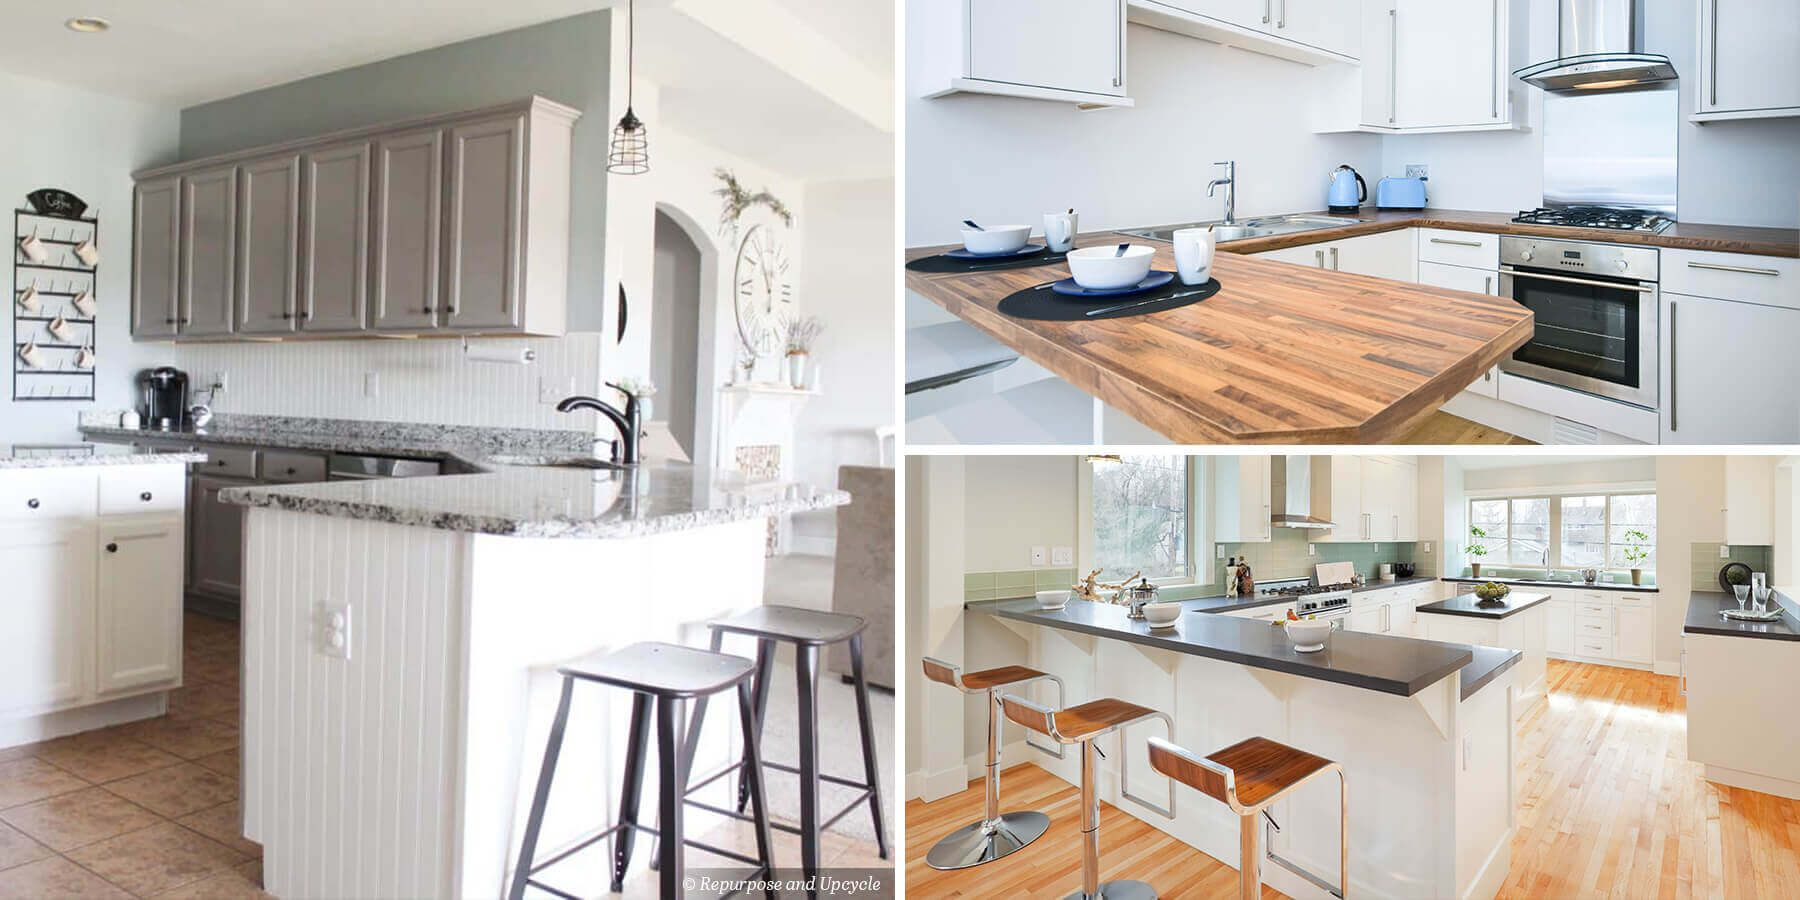 A breakfast bar acts as a table and countertop in one for ...